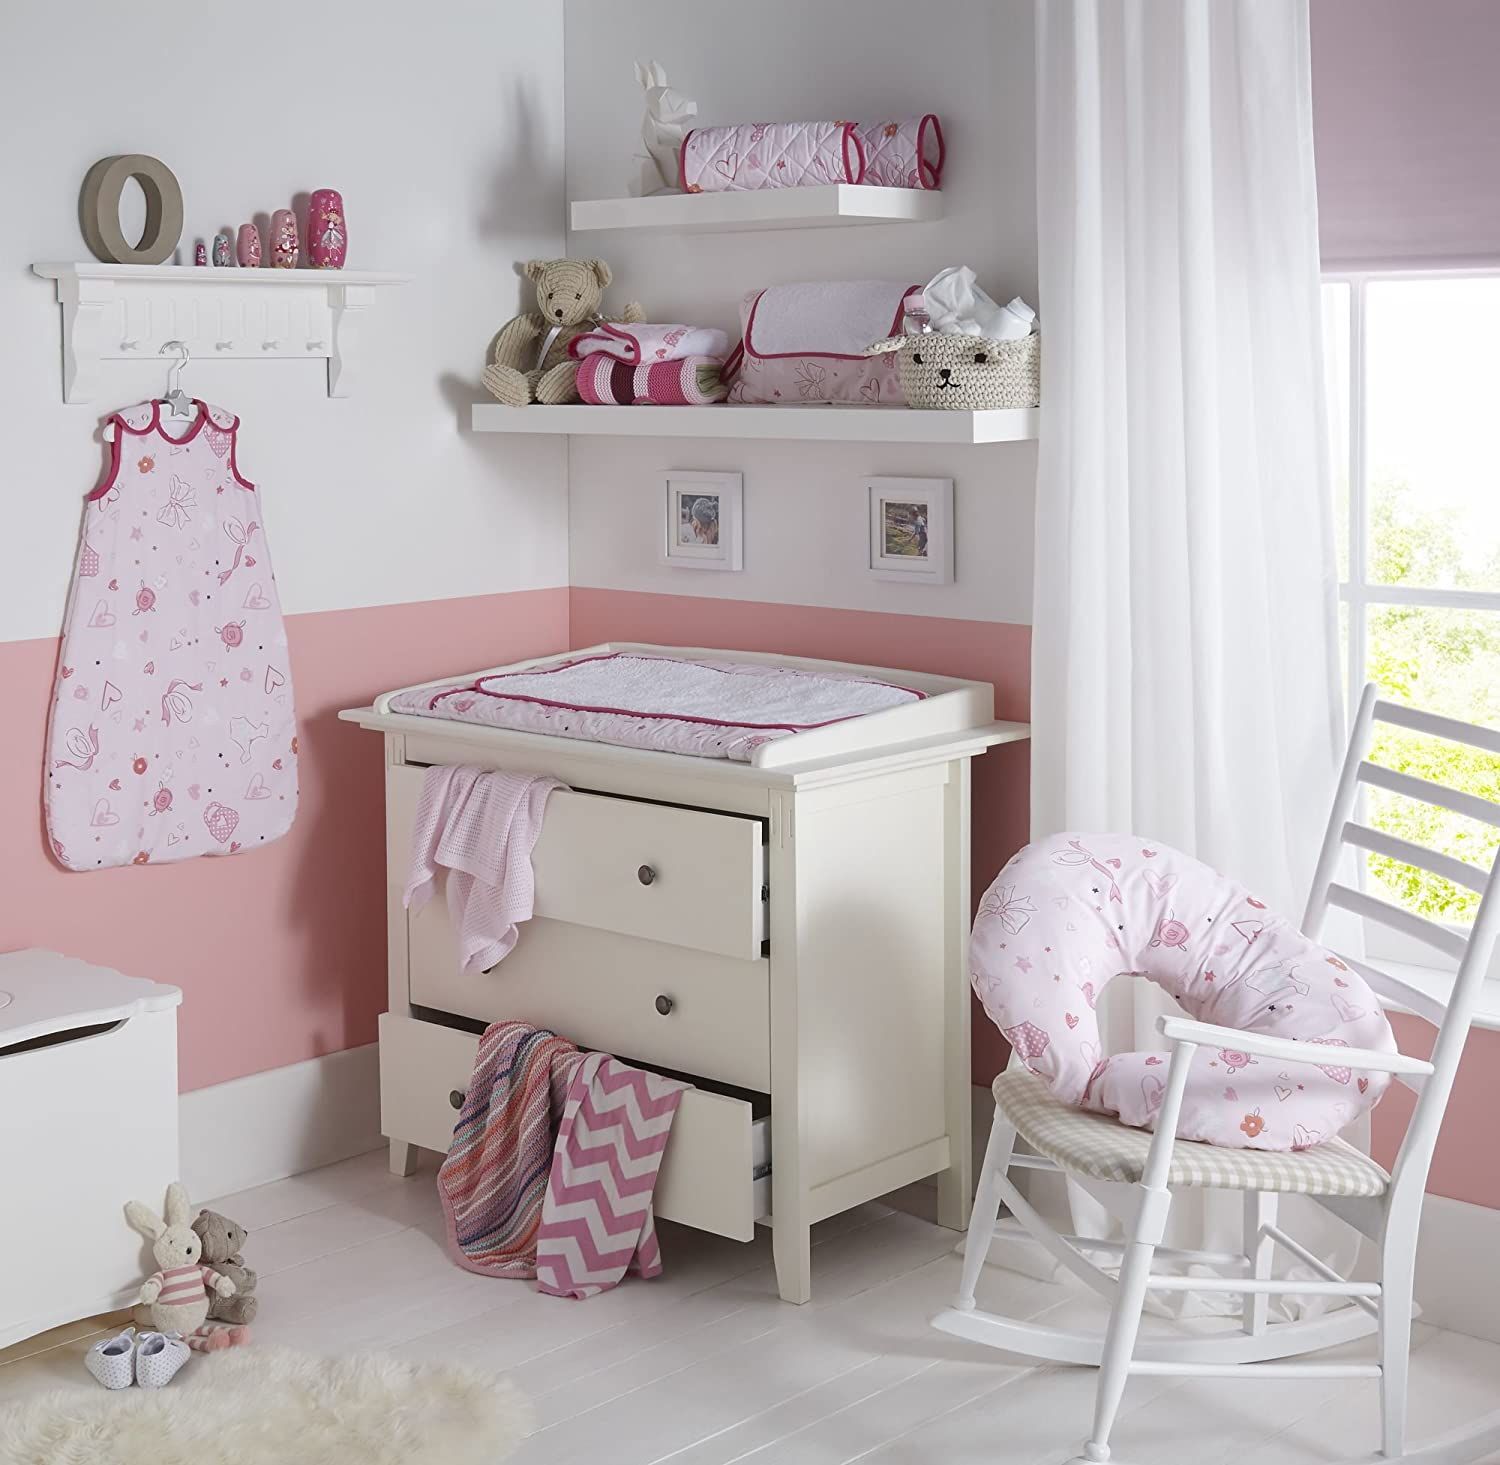 Clair de Lune Tippy Toes Pink Wicker Moses Basket